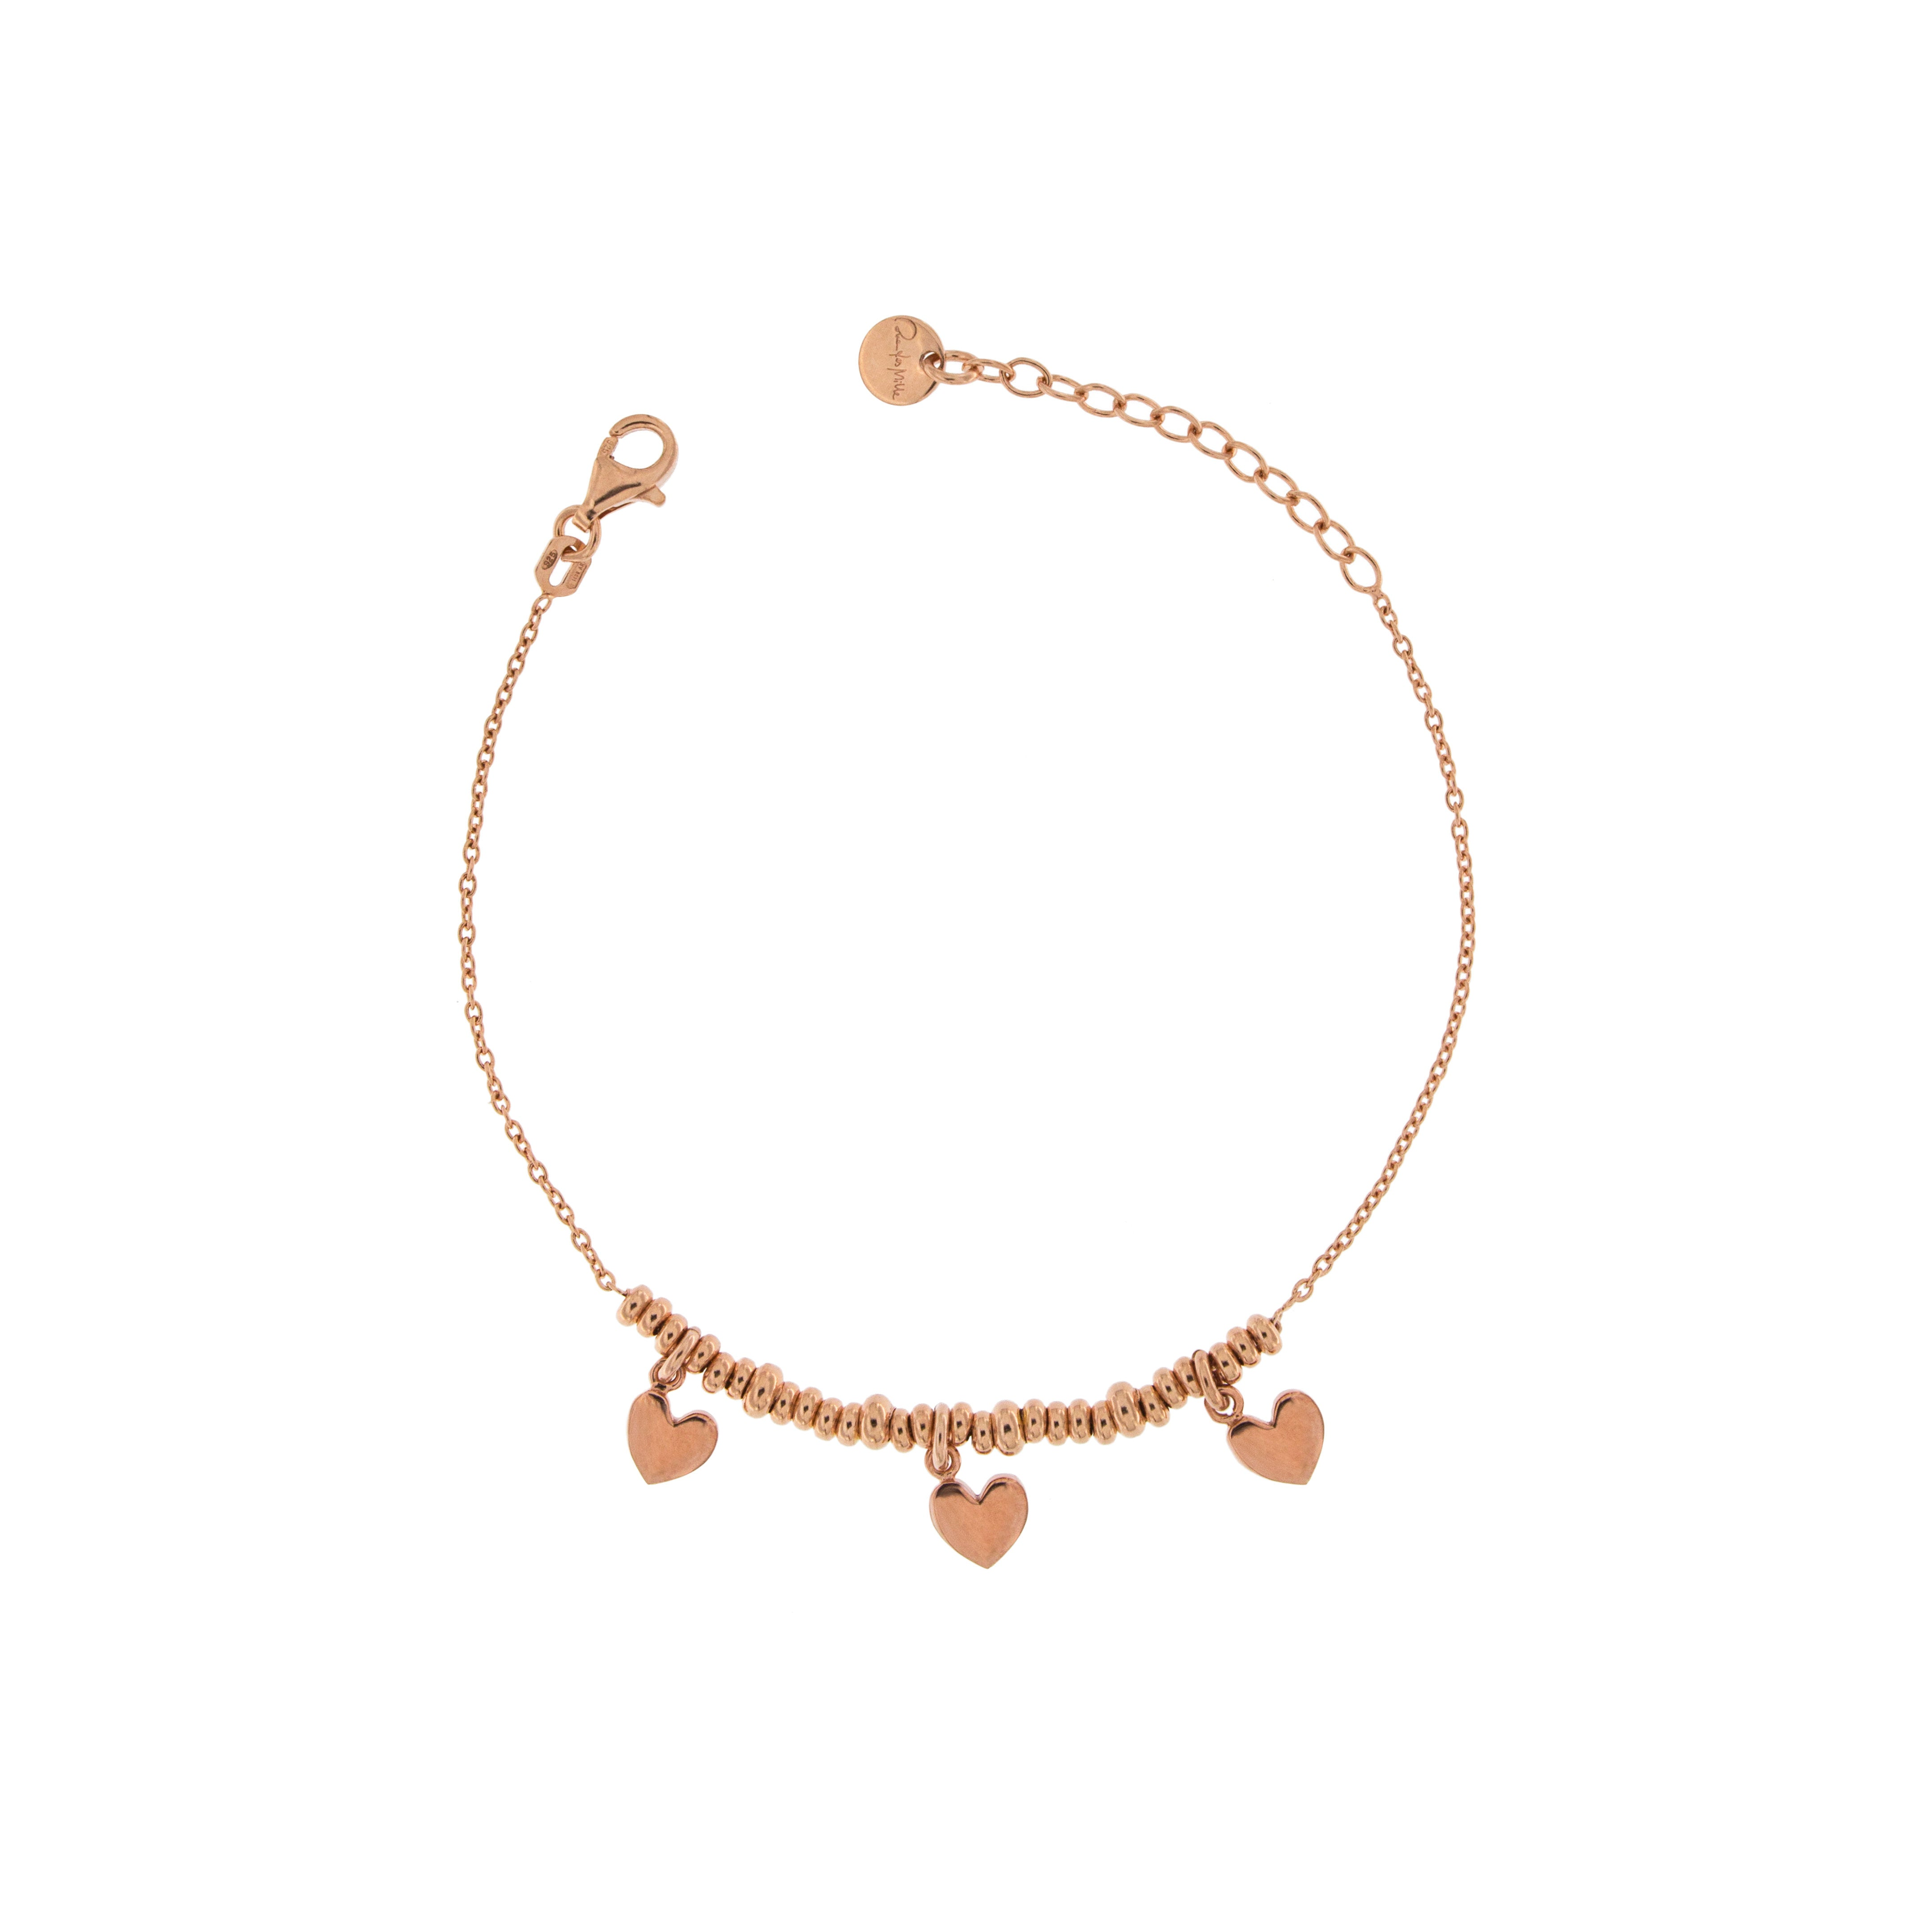 Bracelets - Bracelet with Three Hearts and micro circles - 1   Rue des Mille